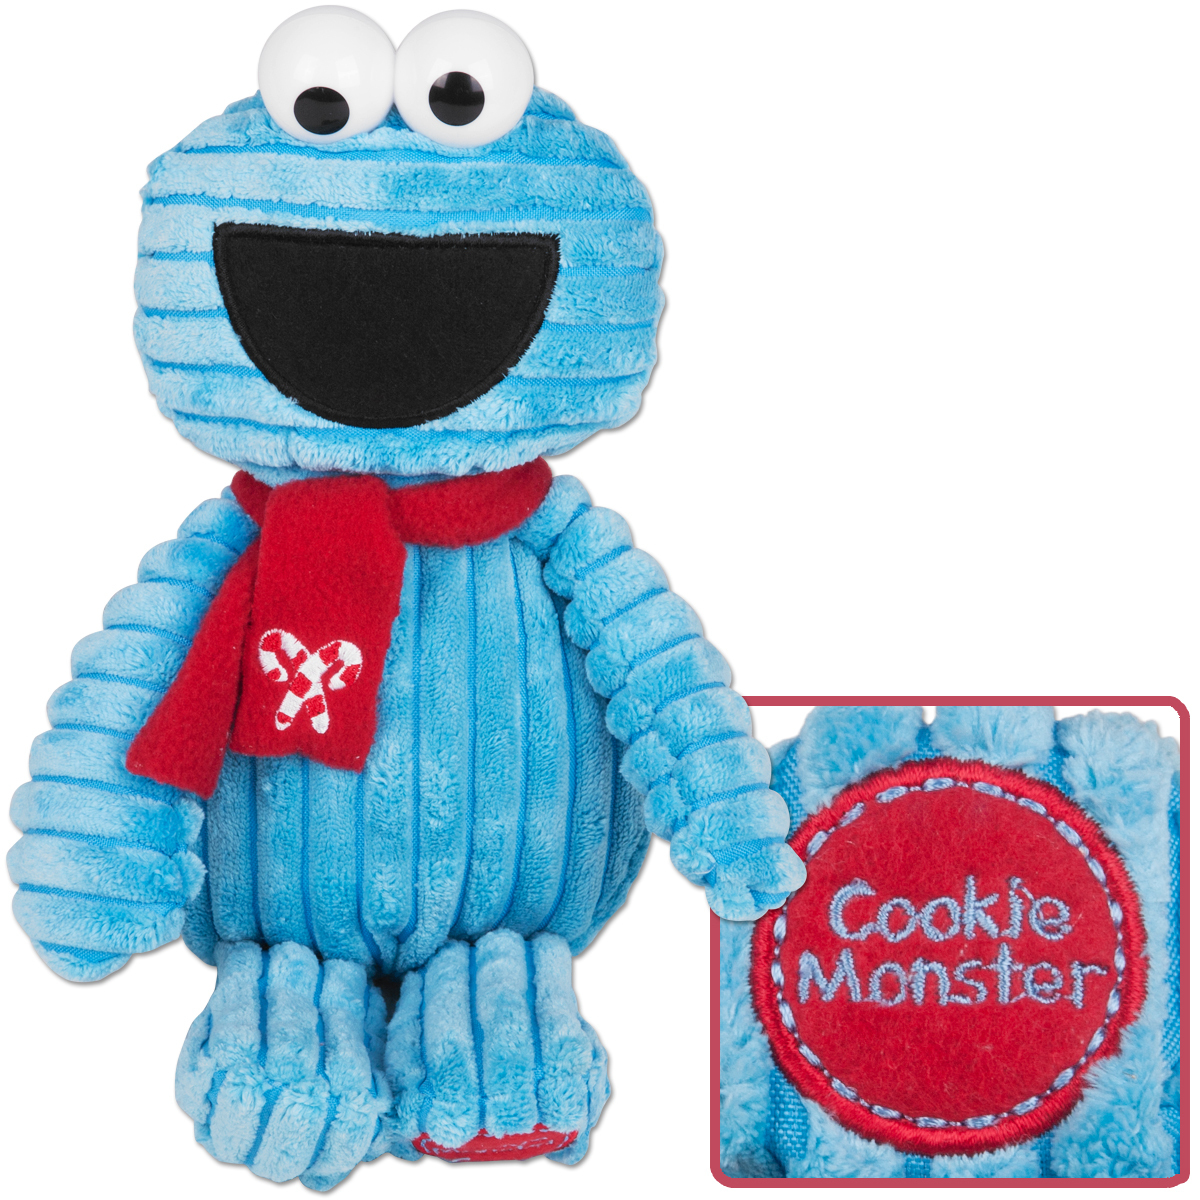 Cookie Monster Corduroy Holiday Plush